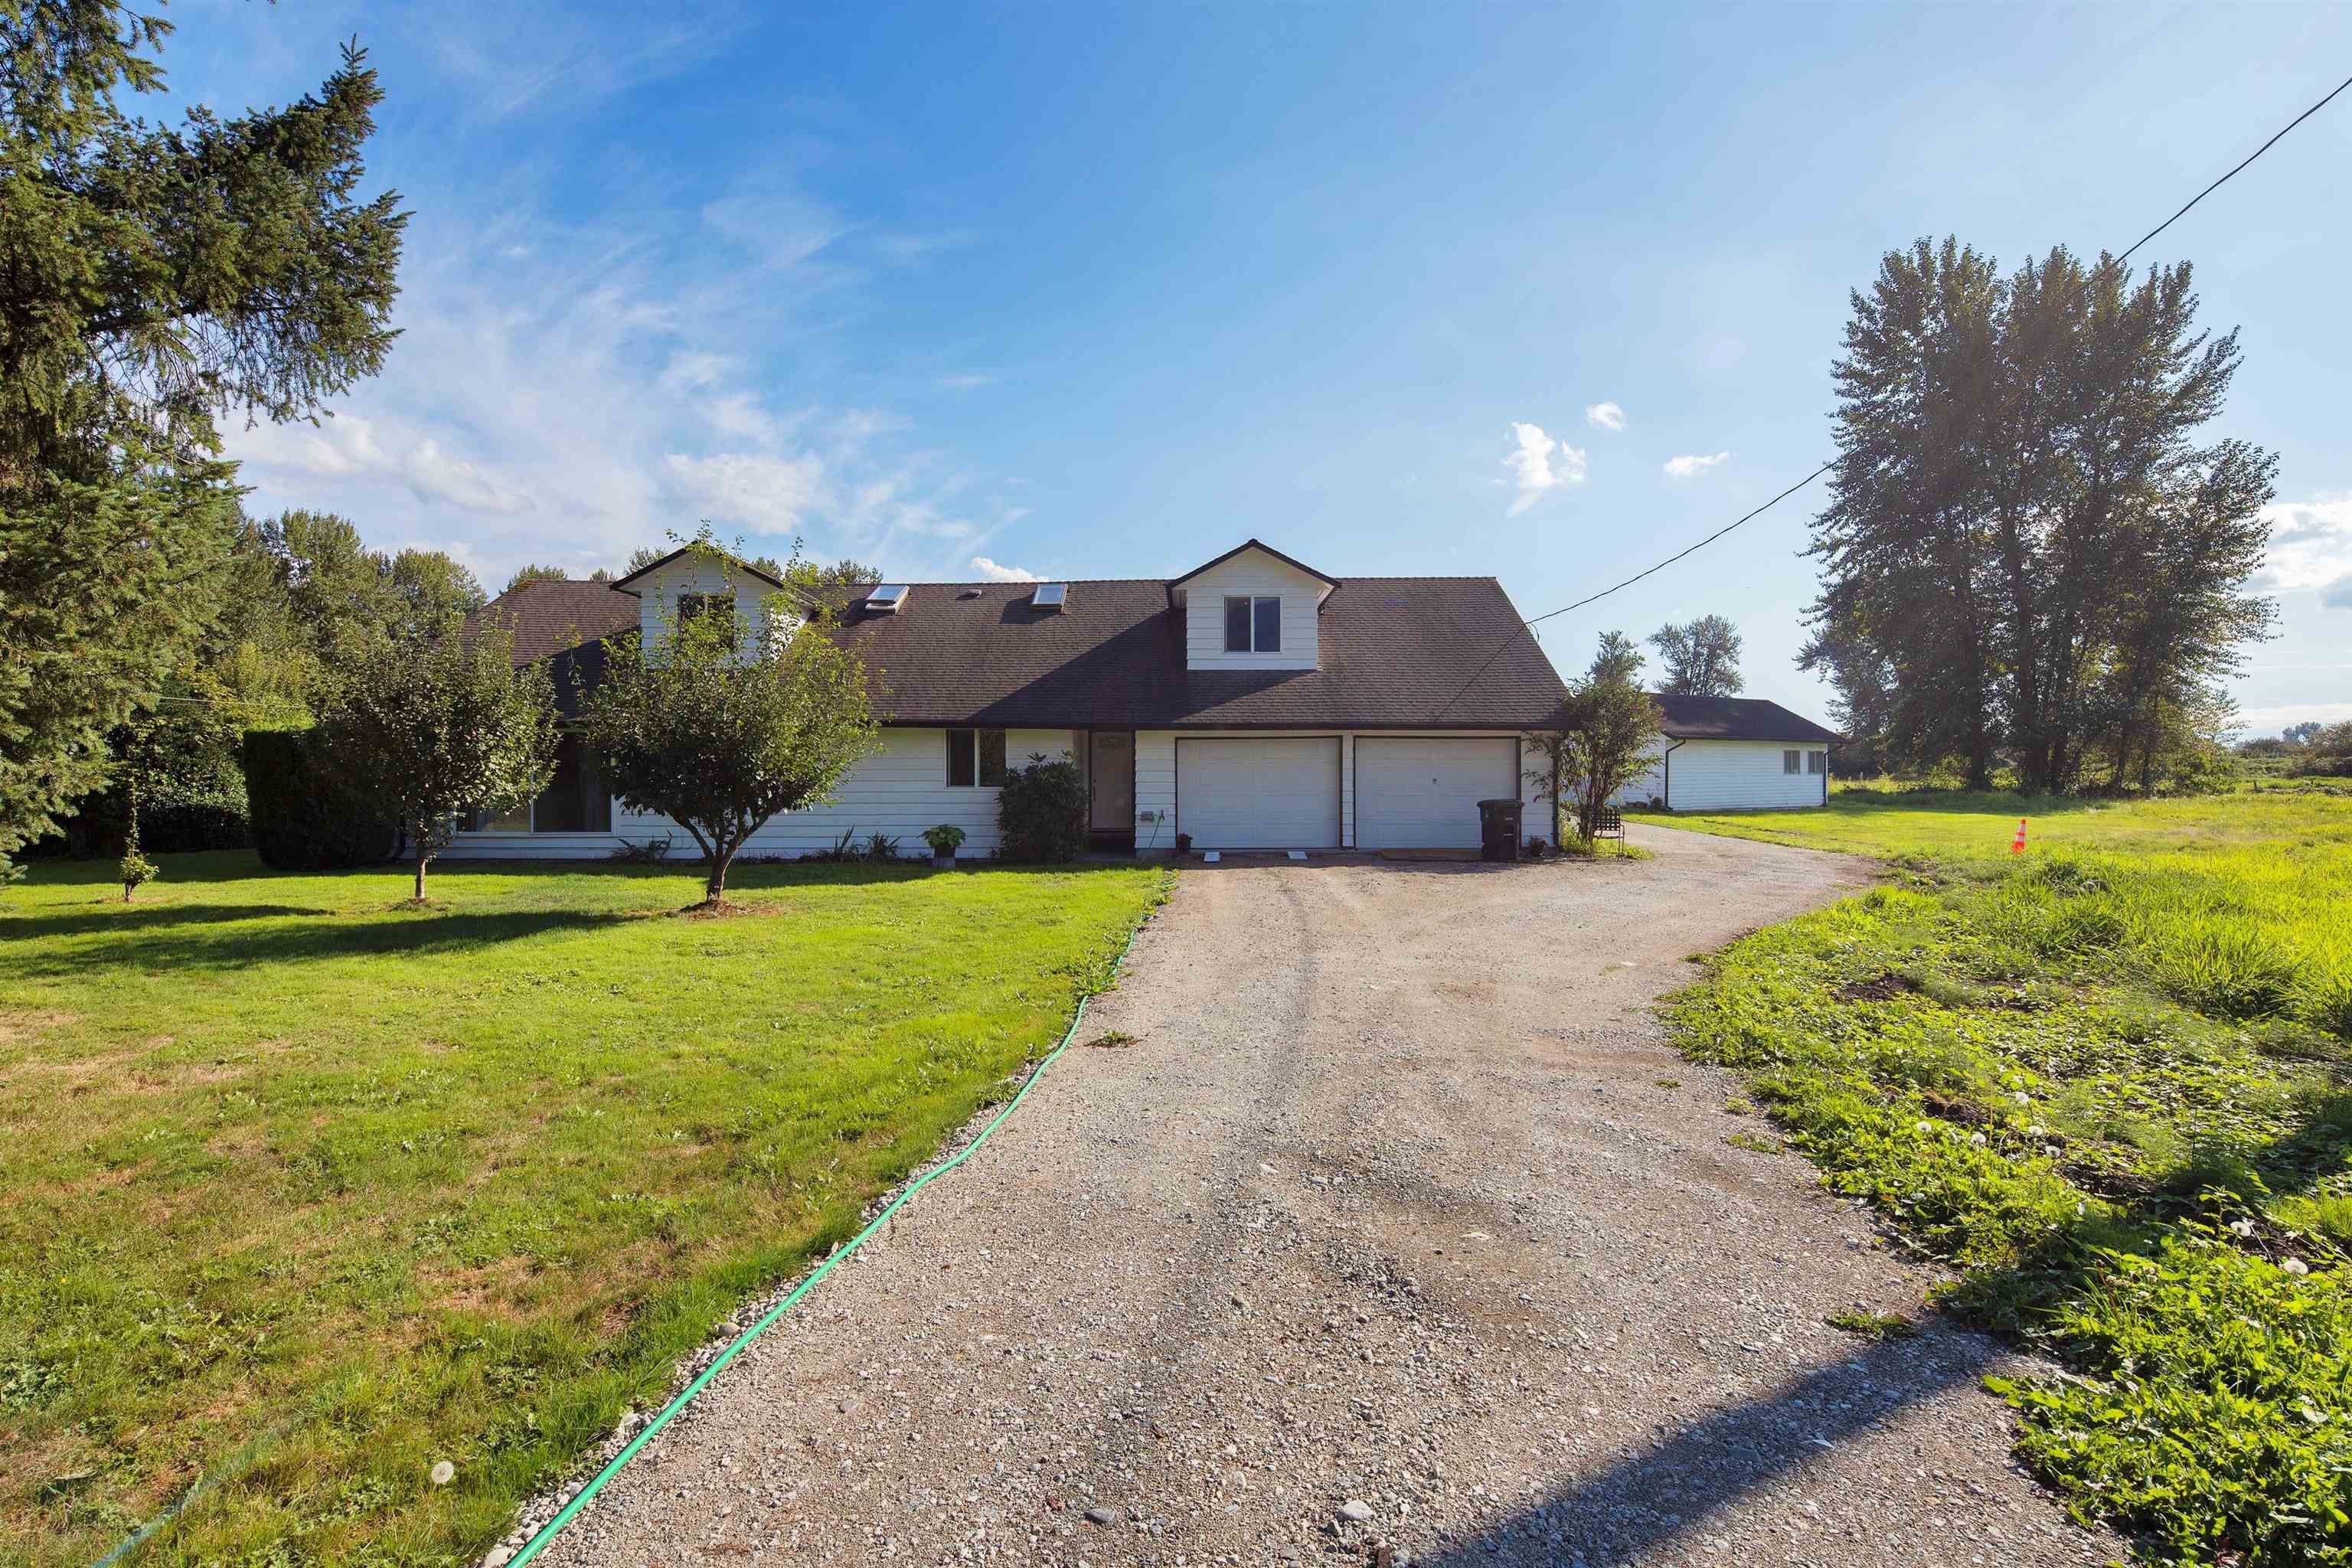 Main Photo: 19658 RICHARDSON Road in Pitt Meadows: North Meadows PI House for sale : MLS®# R2616739